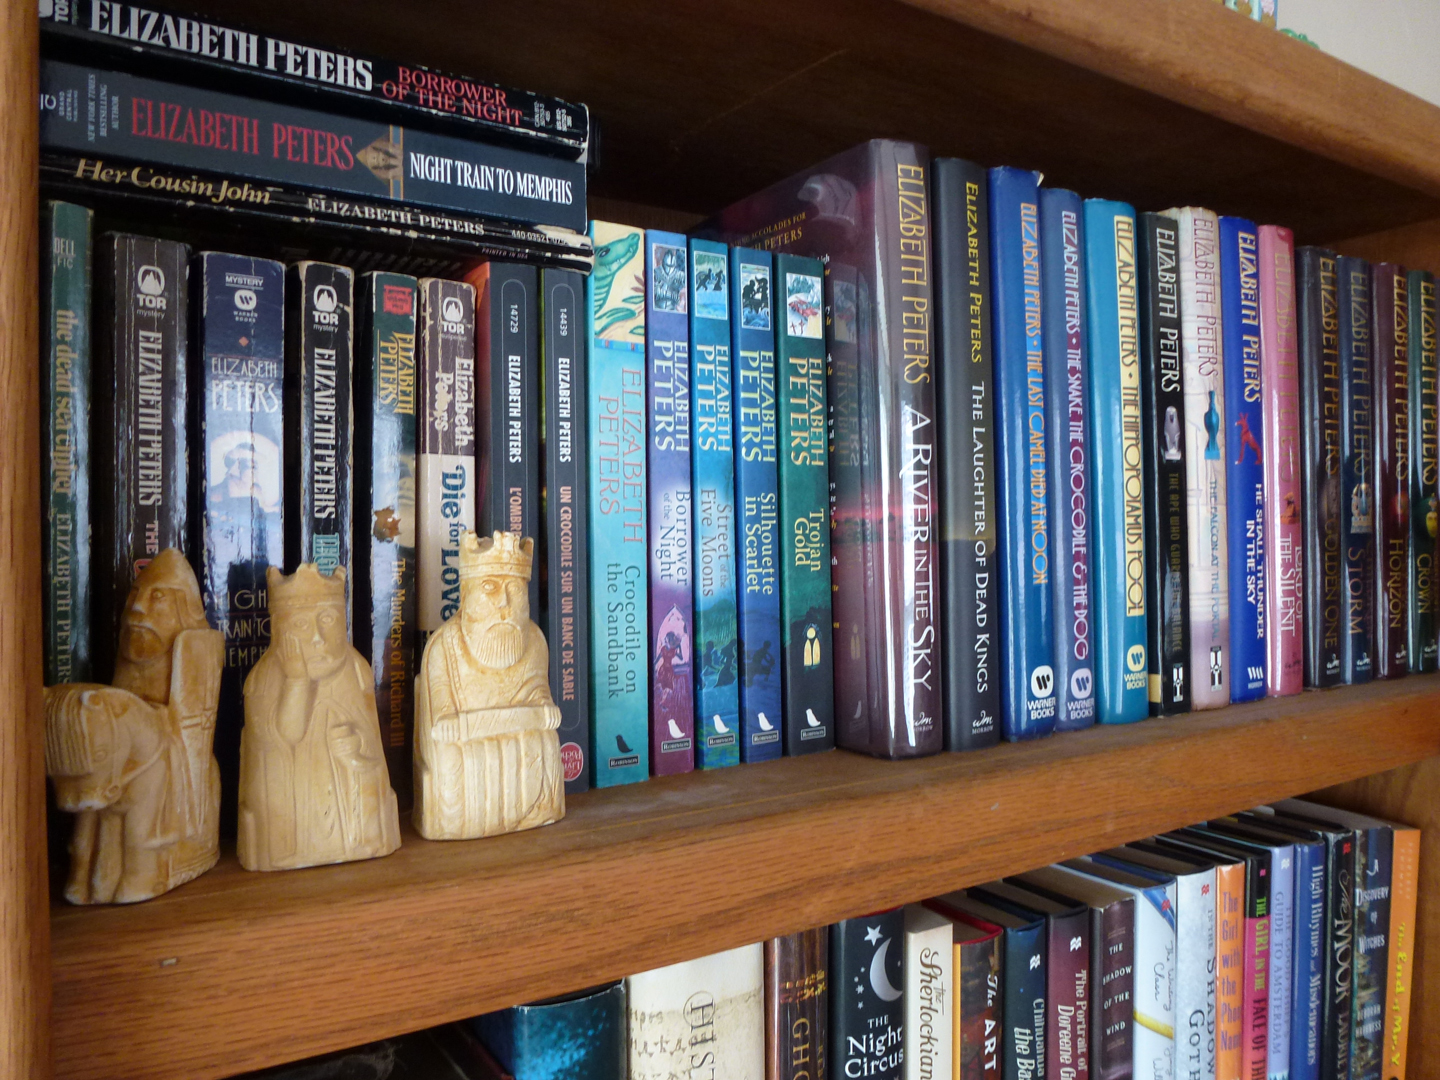 My bookshelf devoted to Elizabeth Peters novels. (And that's the Lewis Chessmen there on the shelf. These are ones I made out of plaster and painted as a fun project when I was a kid. See, I told you I couldn't escape my fate.)